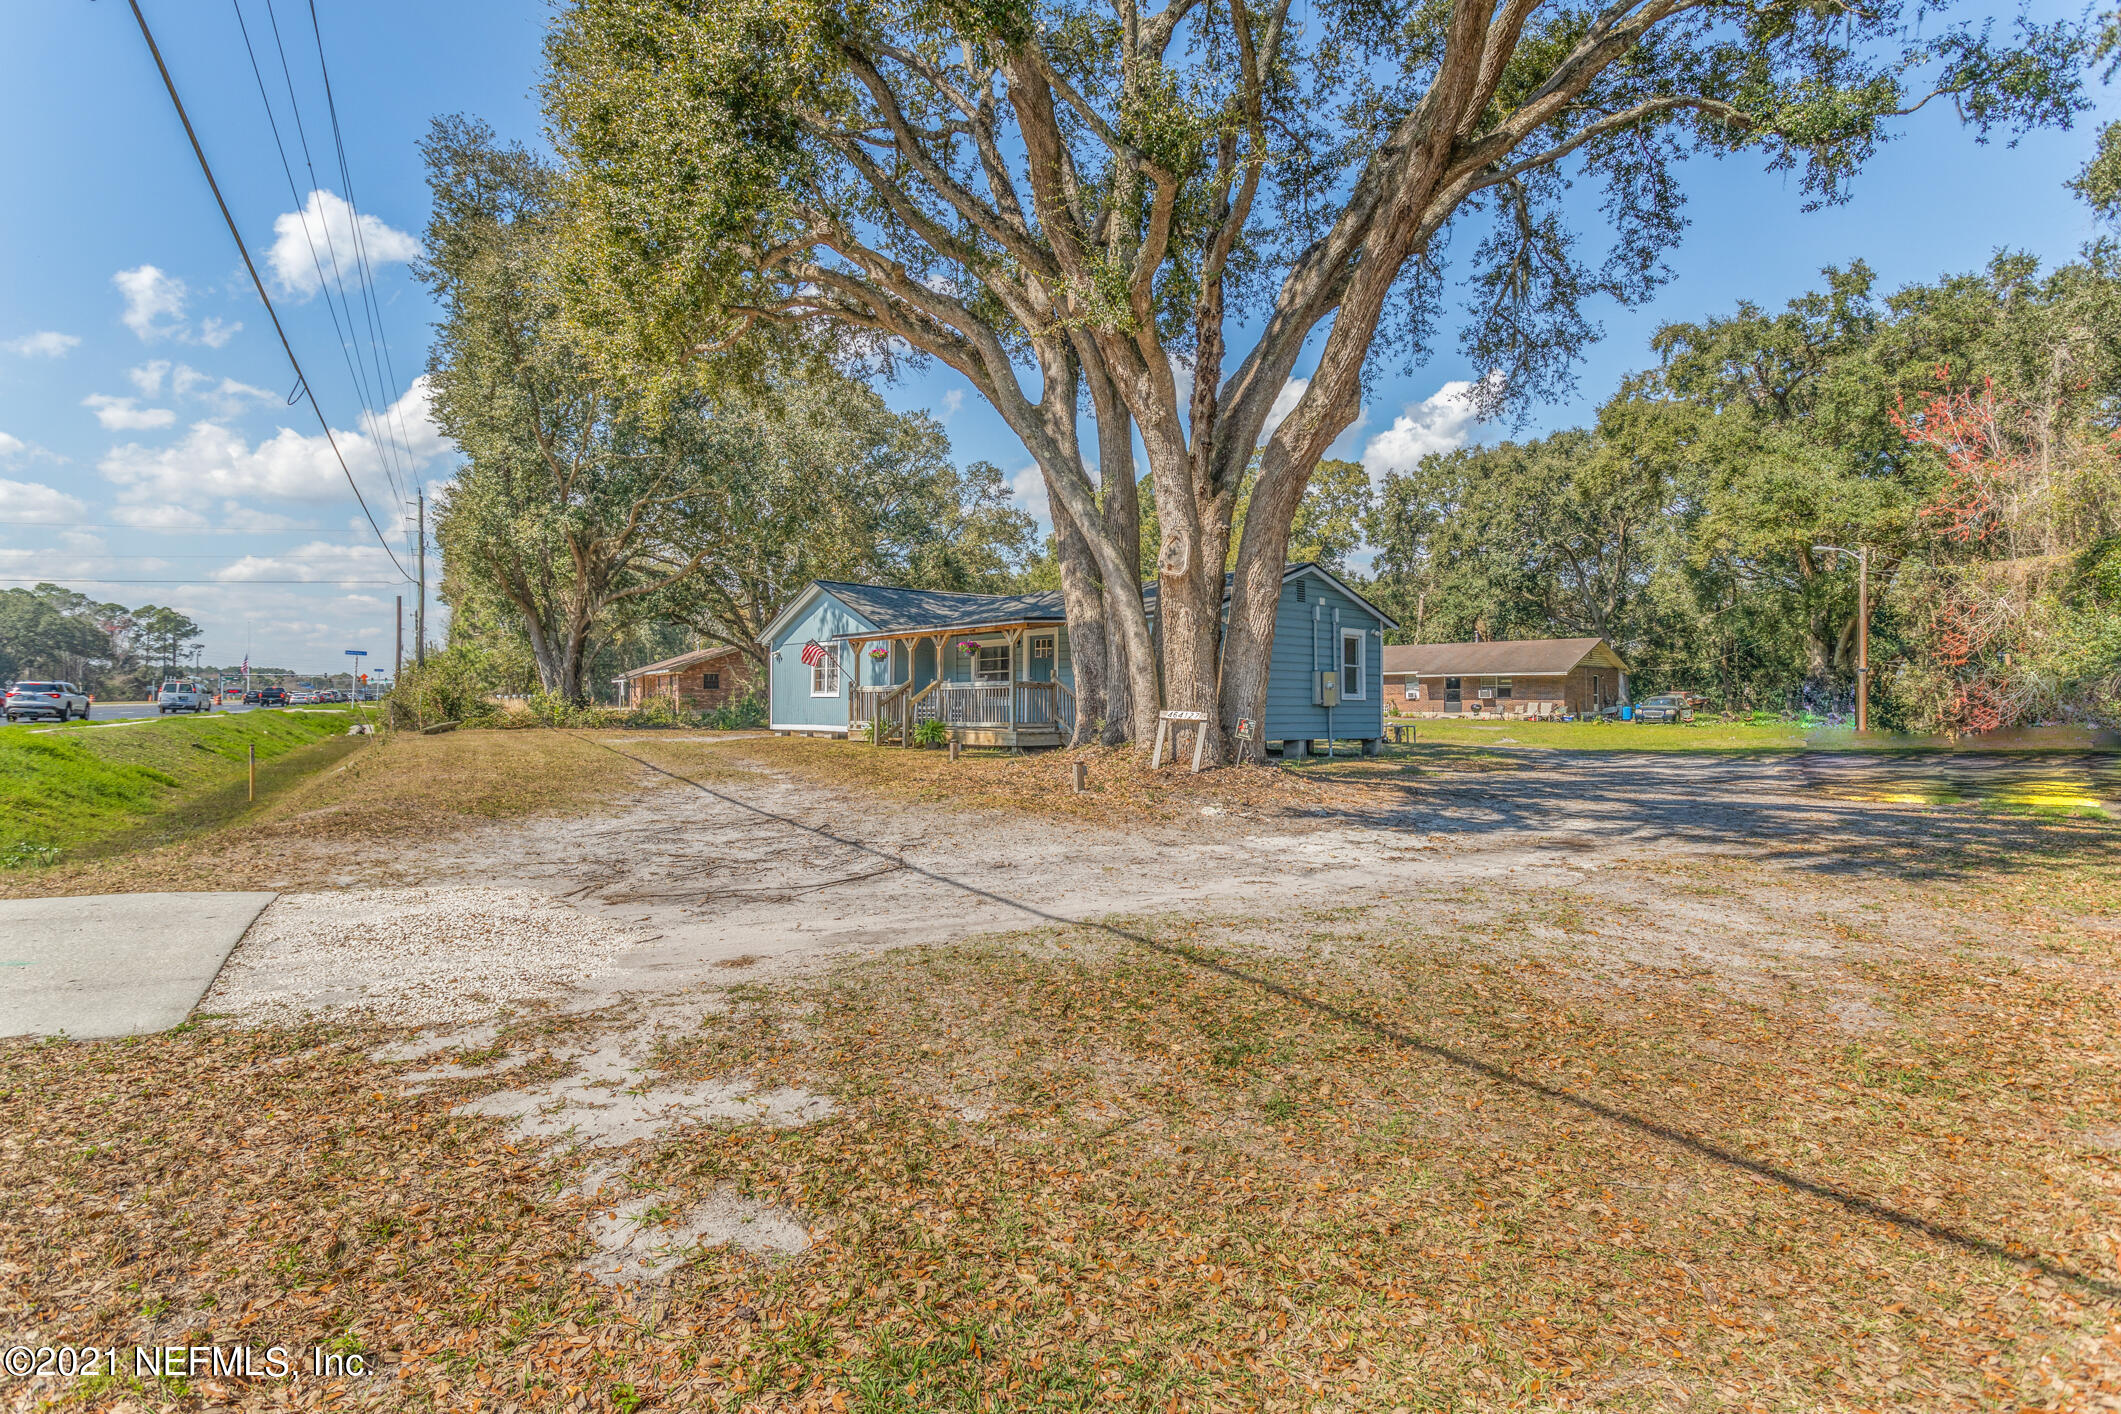 464127 STATE RD 200, YULEE, FLORIDA 32097, ,Commercial,For sale,STATE RD 200,1097695